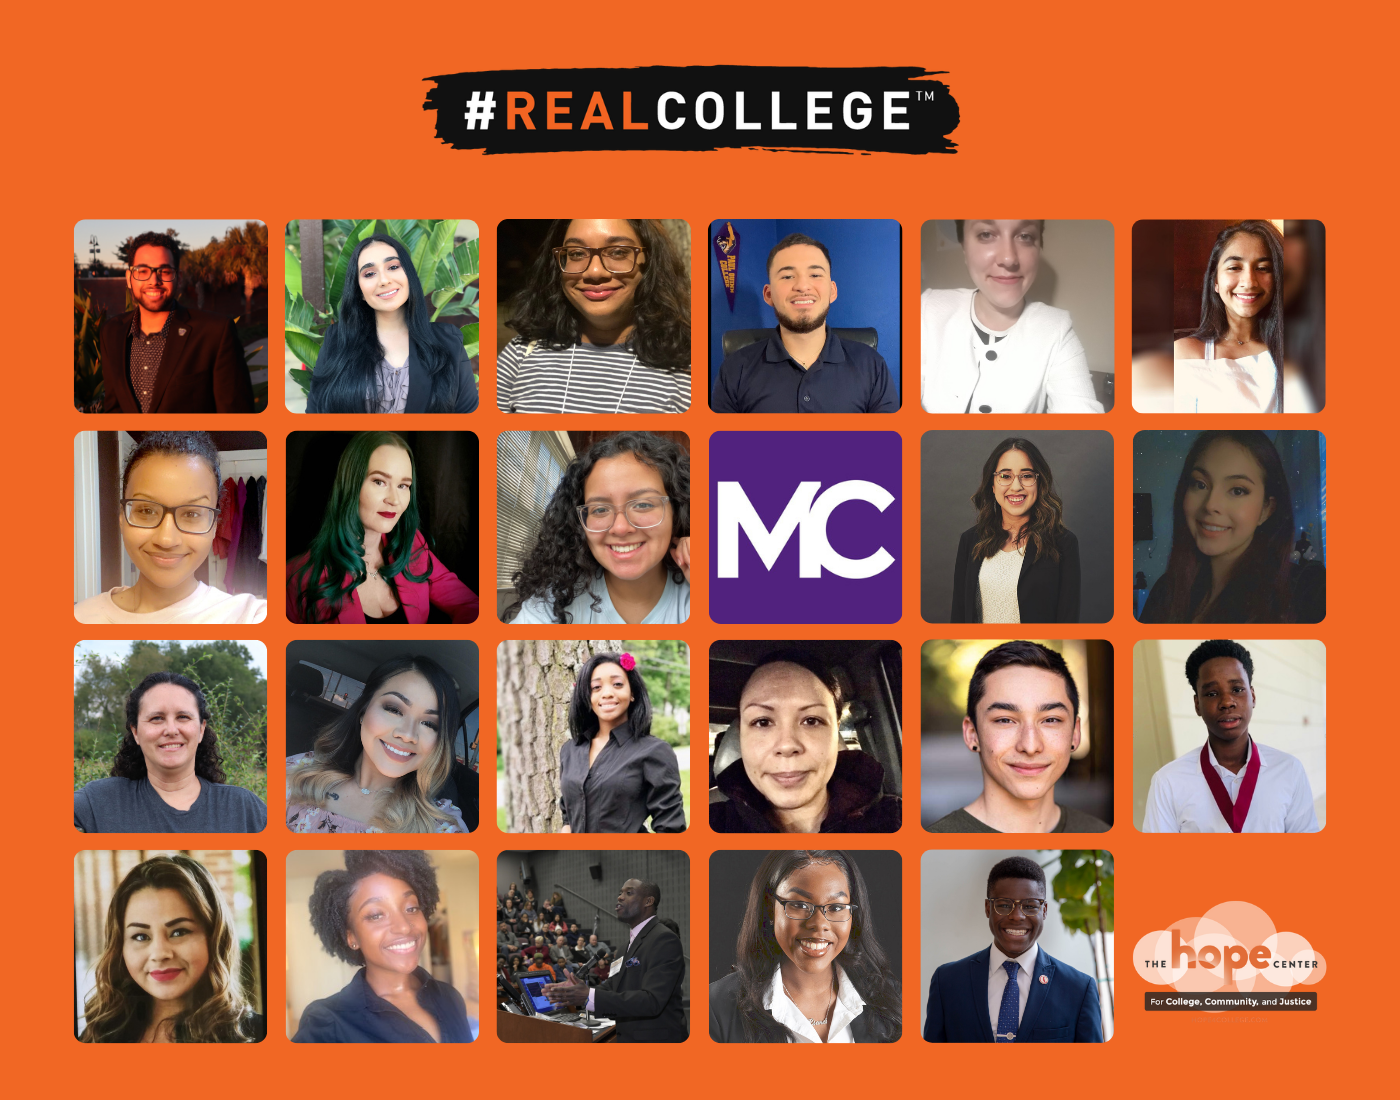 The Hope Center Announces the Inaugural #RealCollege Student Leadership Advisory Council